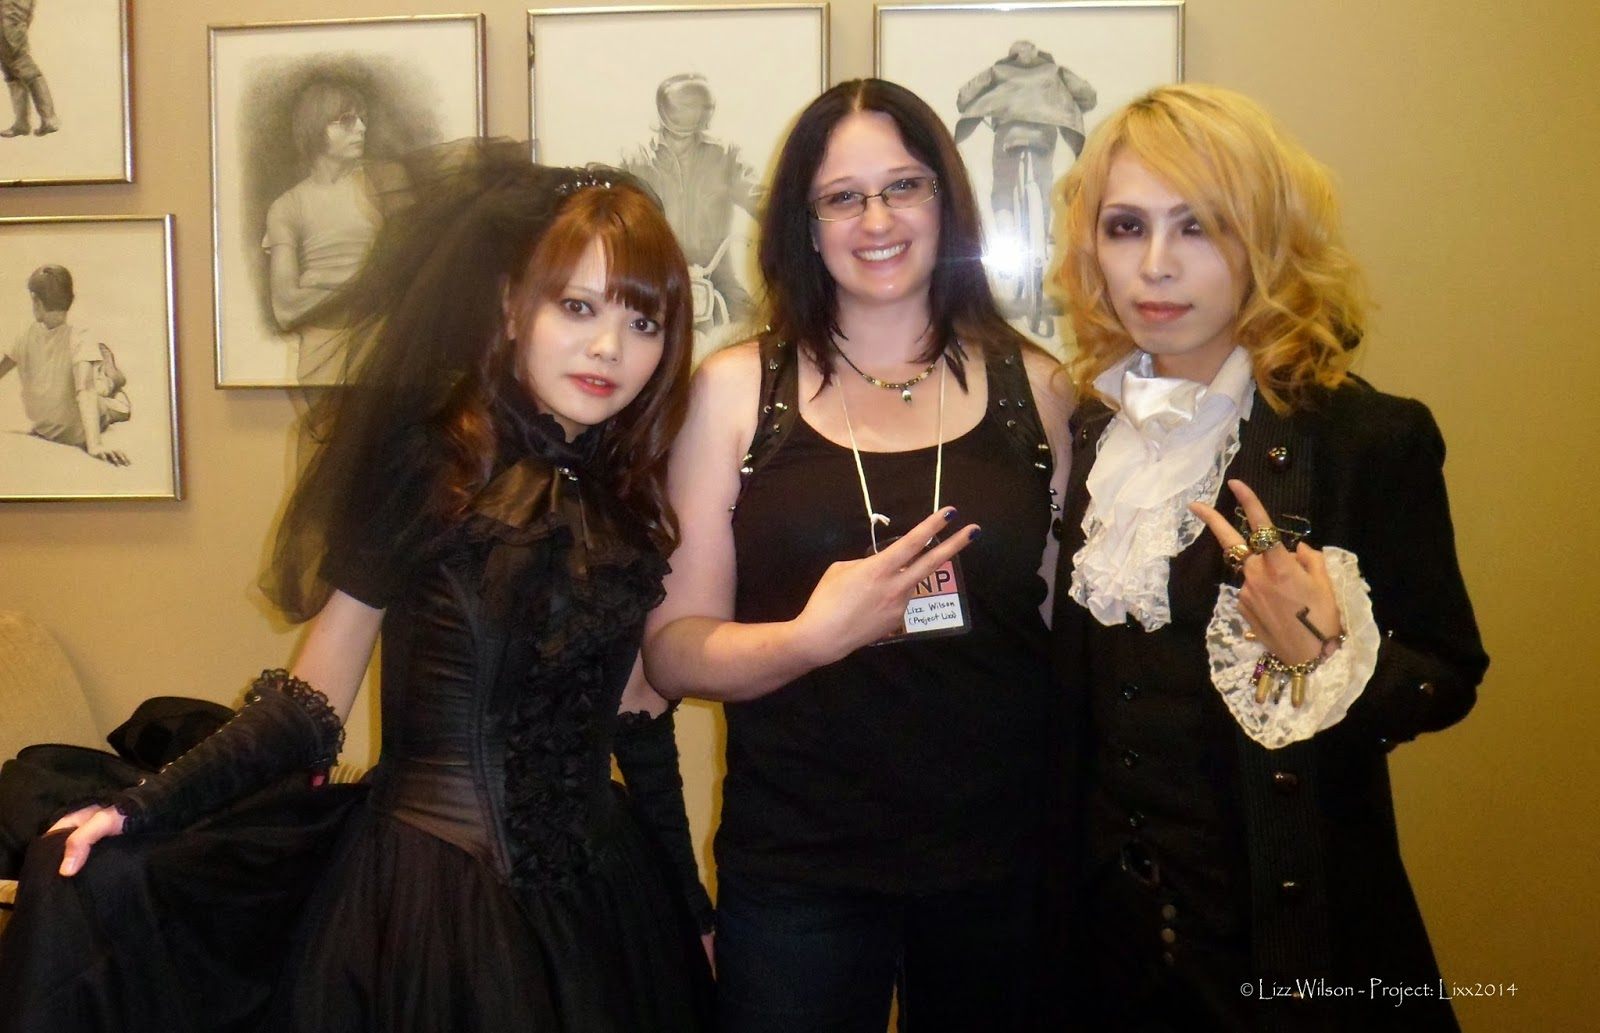 Interview LIVE at Anime North: Rose Noire & DaizyStripper